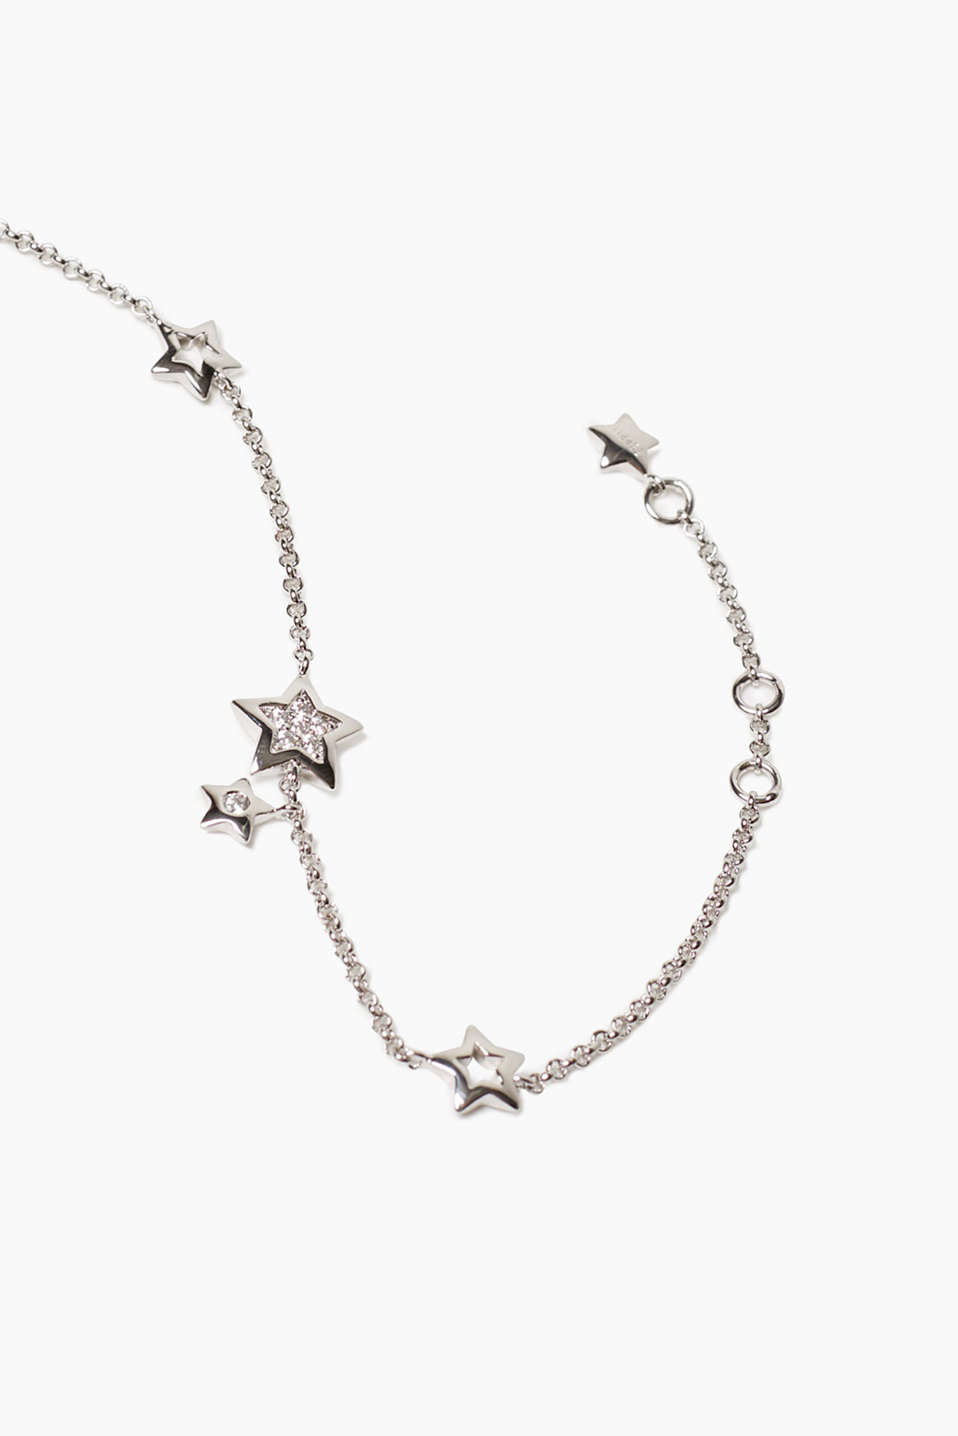 Metal bracelet with stars and zirconia